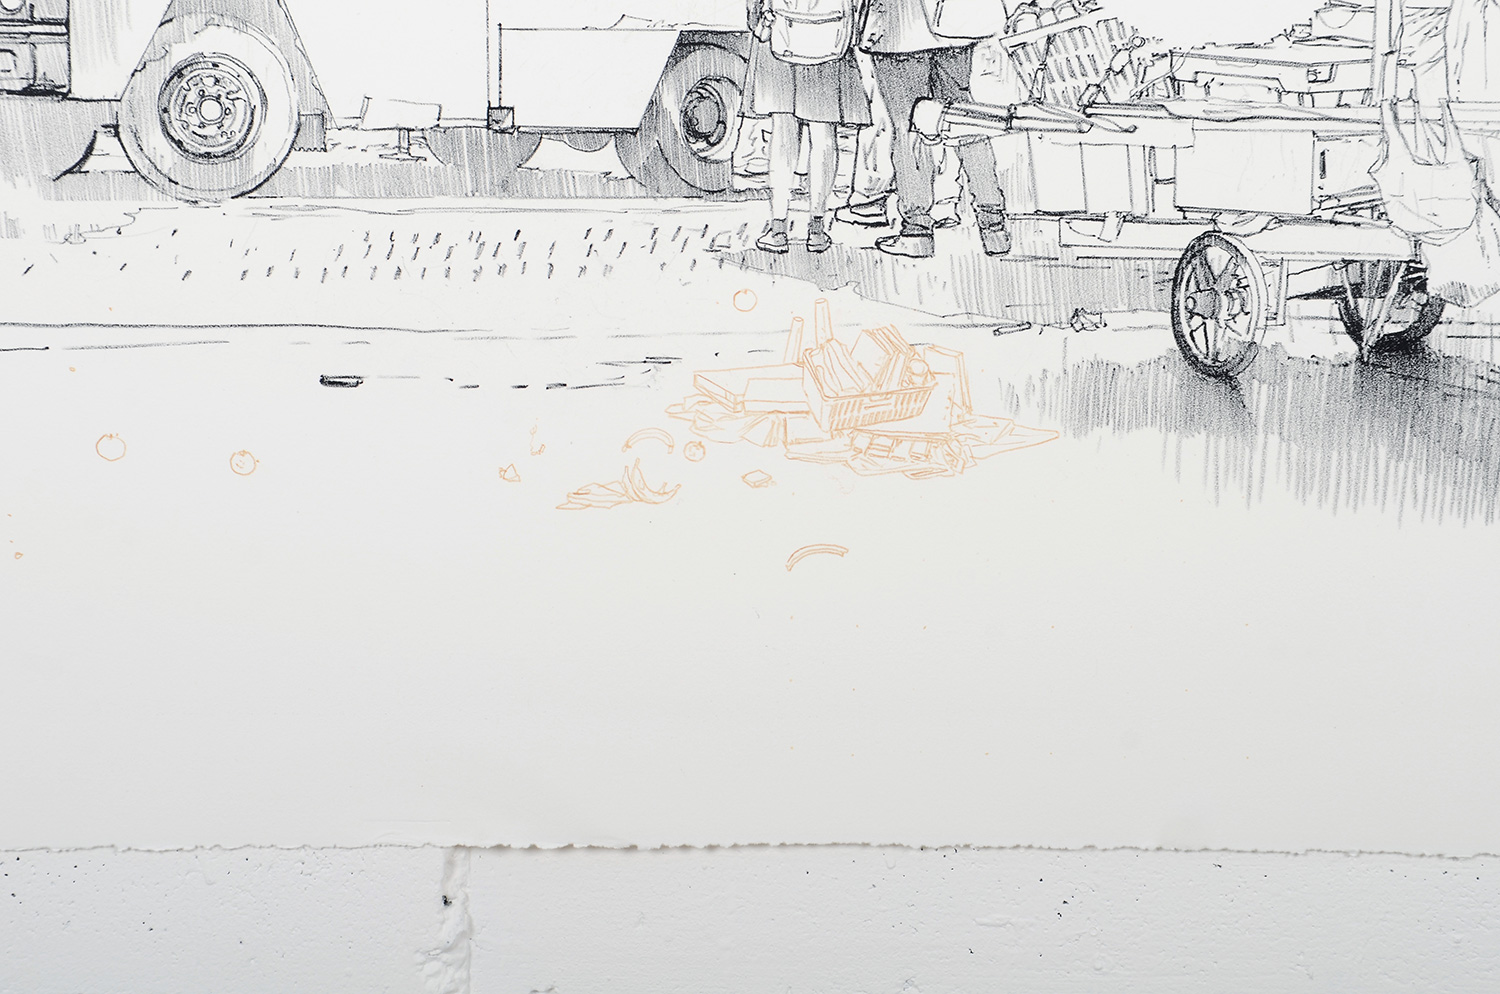 zoer_velvet_street_food_lithographie_CSX_stone_lithograph_urdla_graffiti_process_zoerism_soldart_edition_royx_nicolas_royol_59